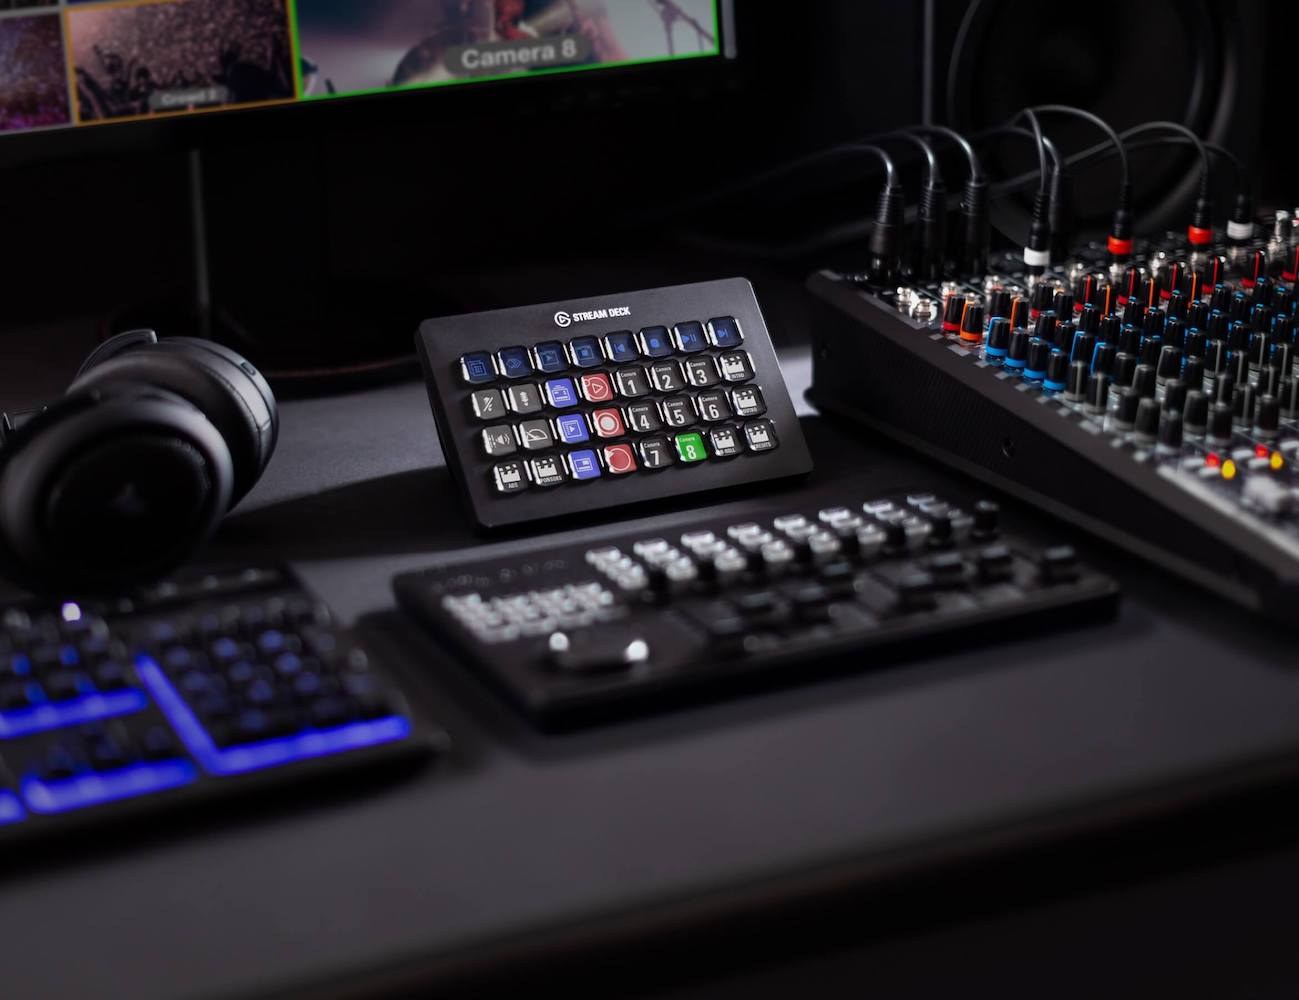 Elgato Stream Deck XL Live Content Creation Controller gives you instant power with just one touch